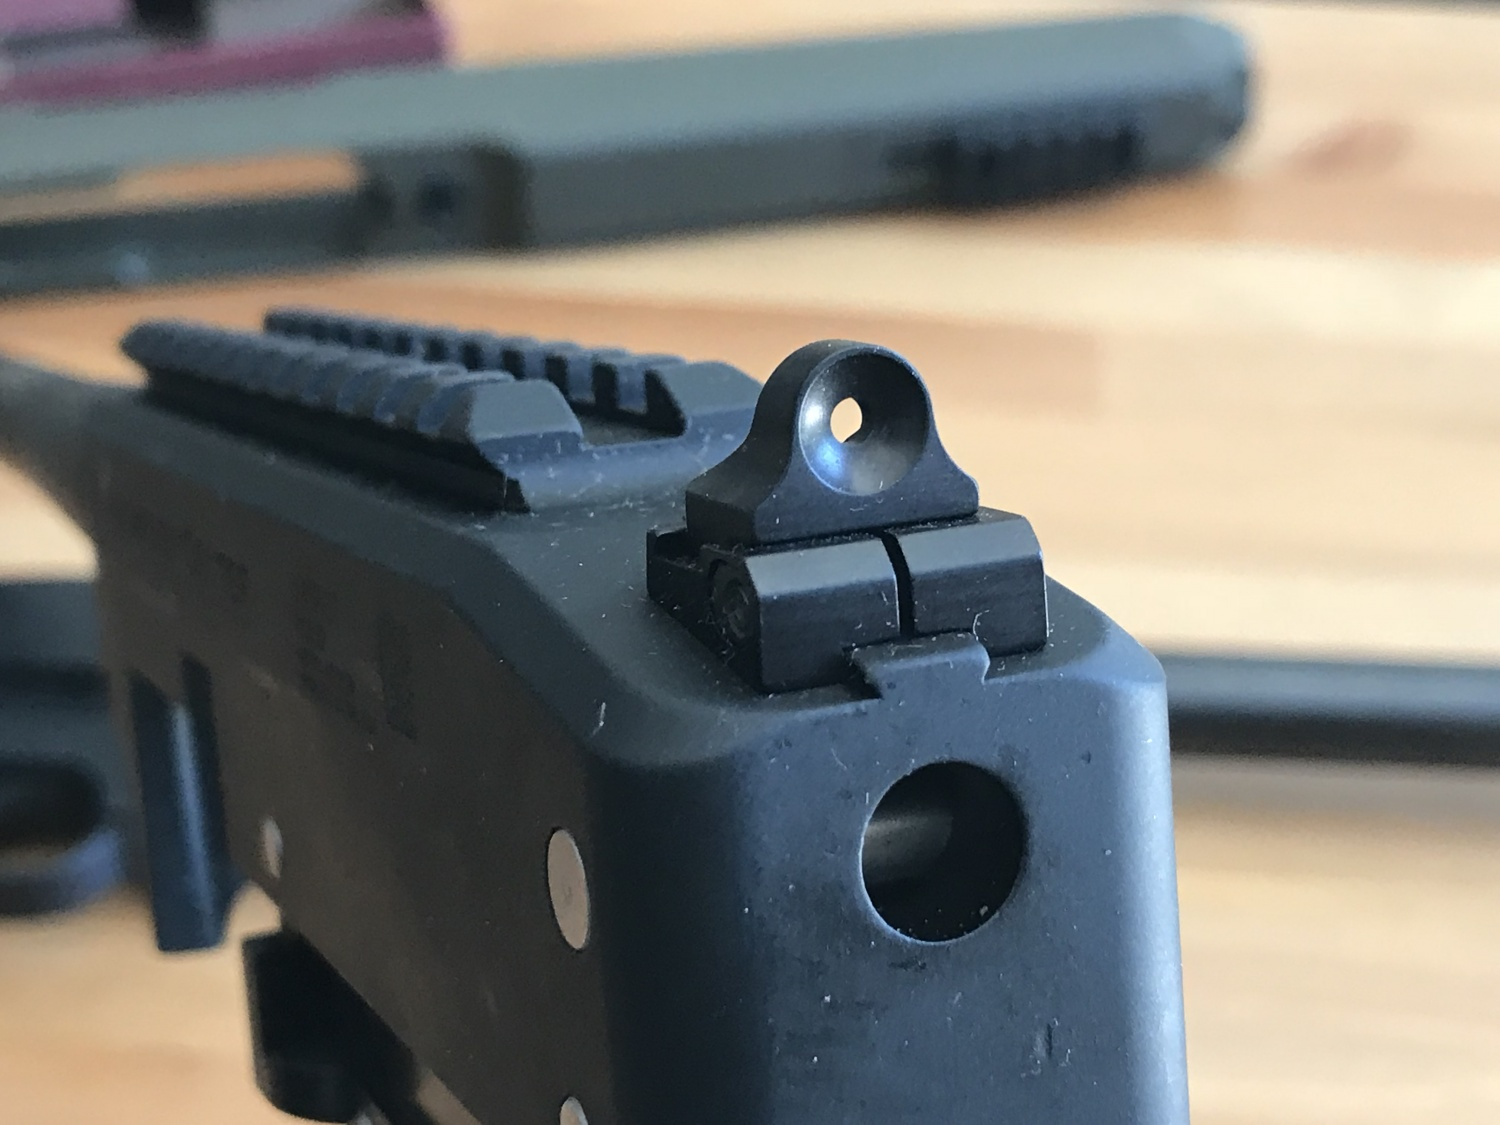 Review: Thompson Center's T/CR22 (10/22 Clone) -The Firearm Blog